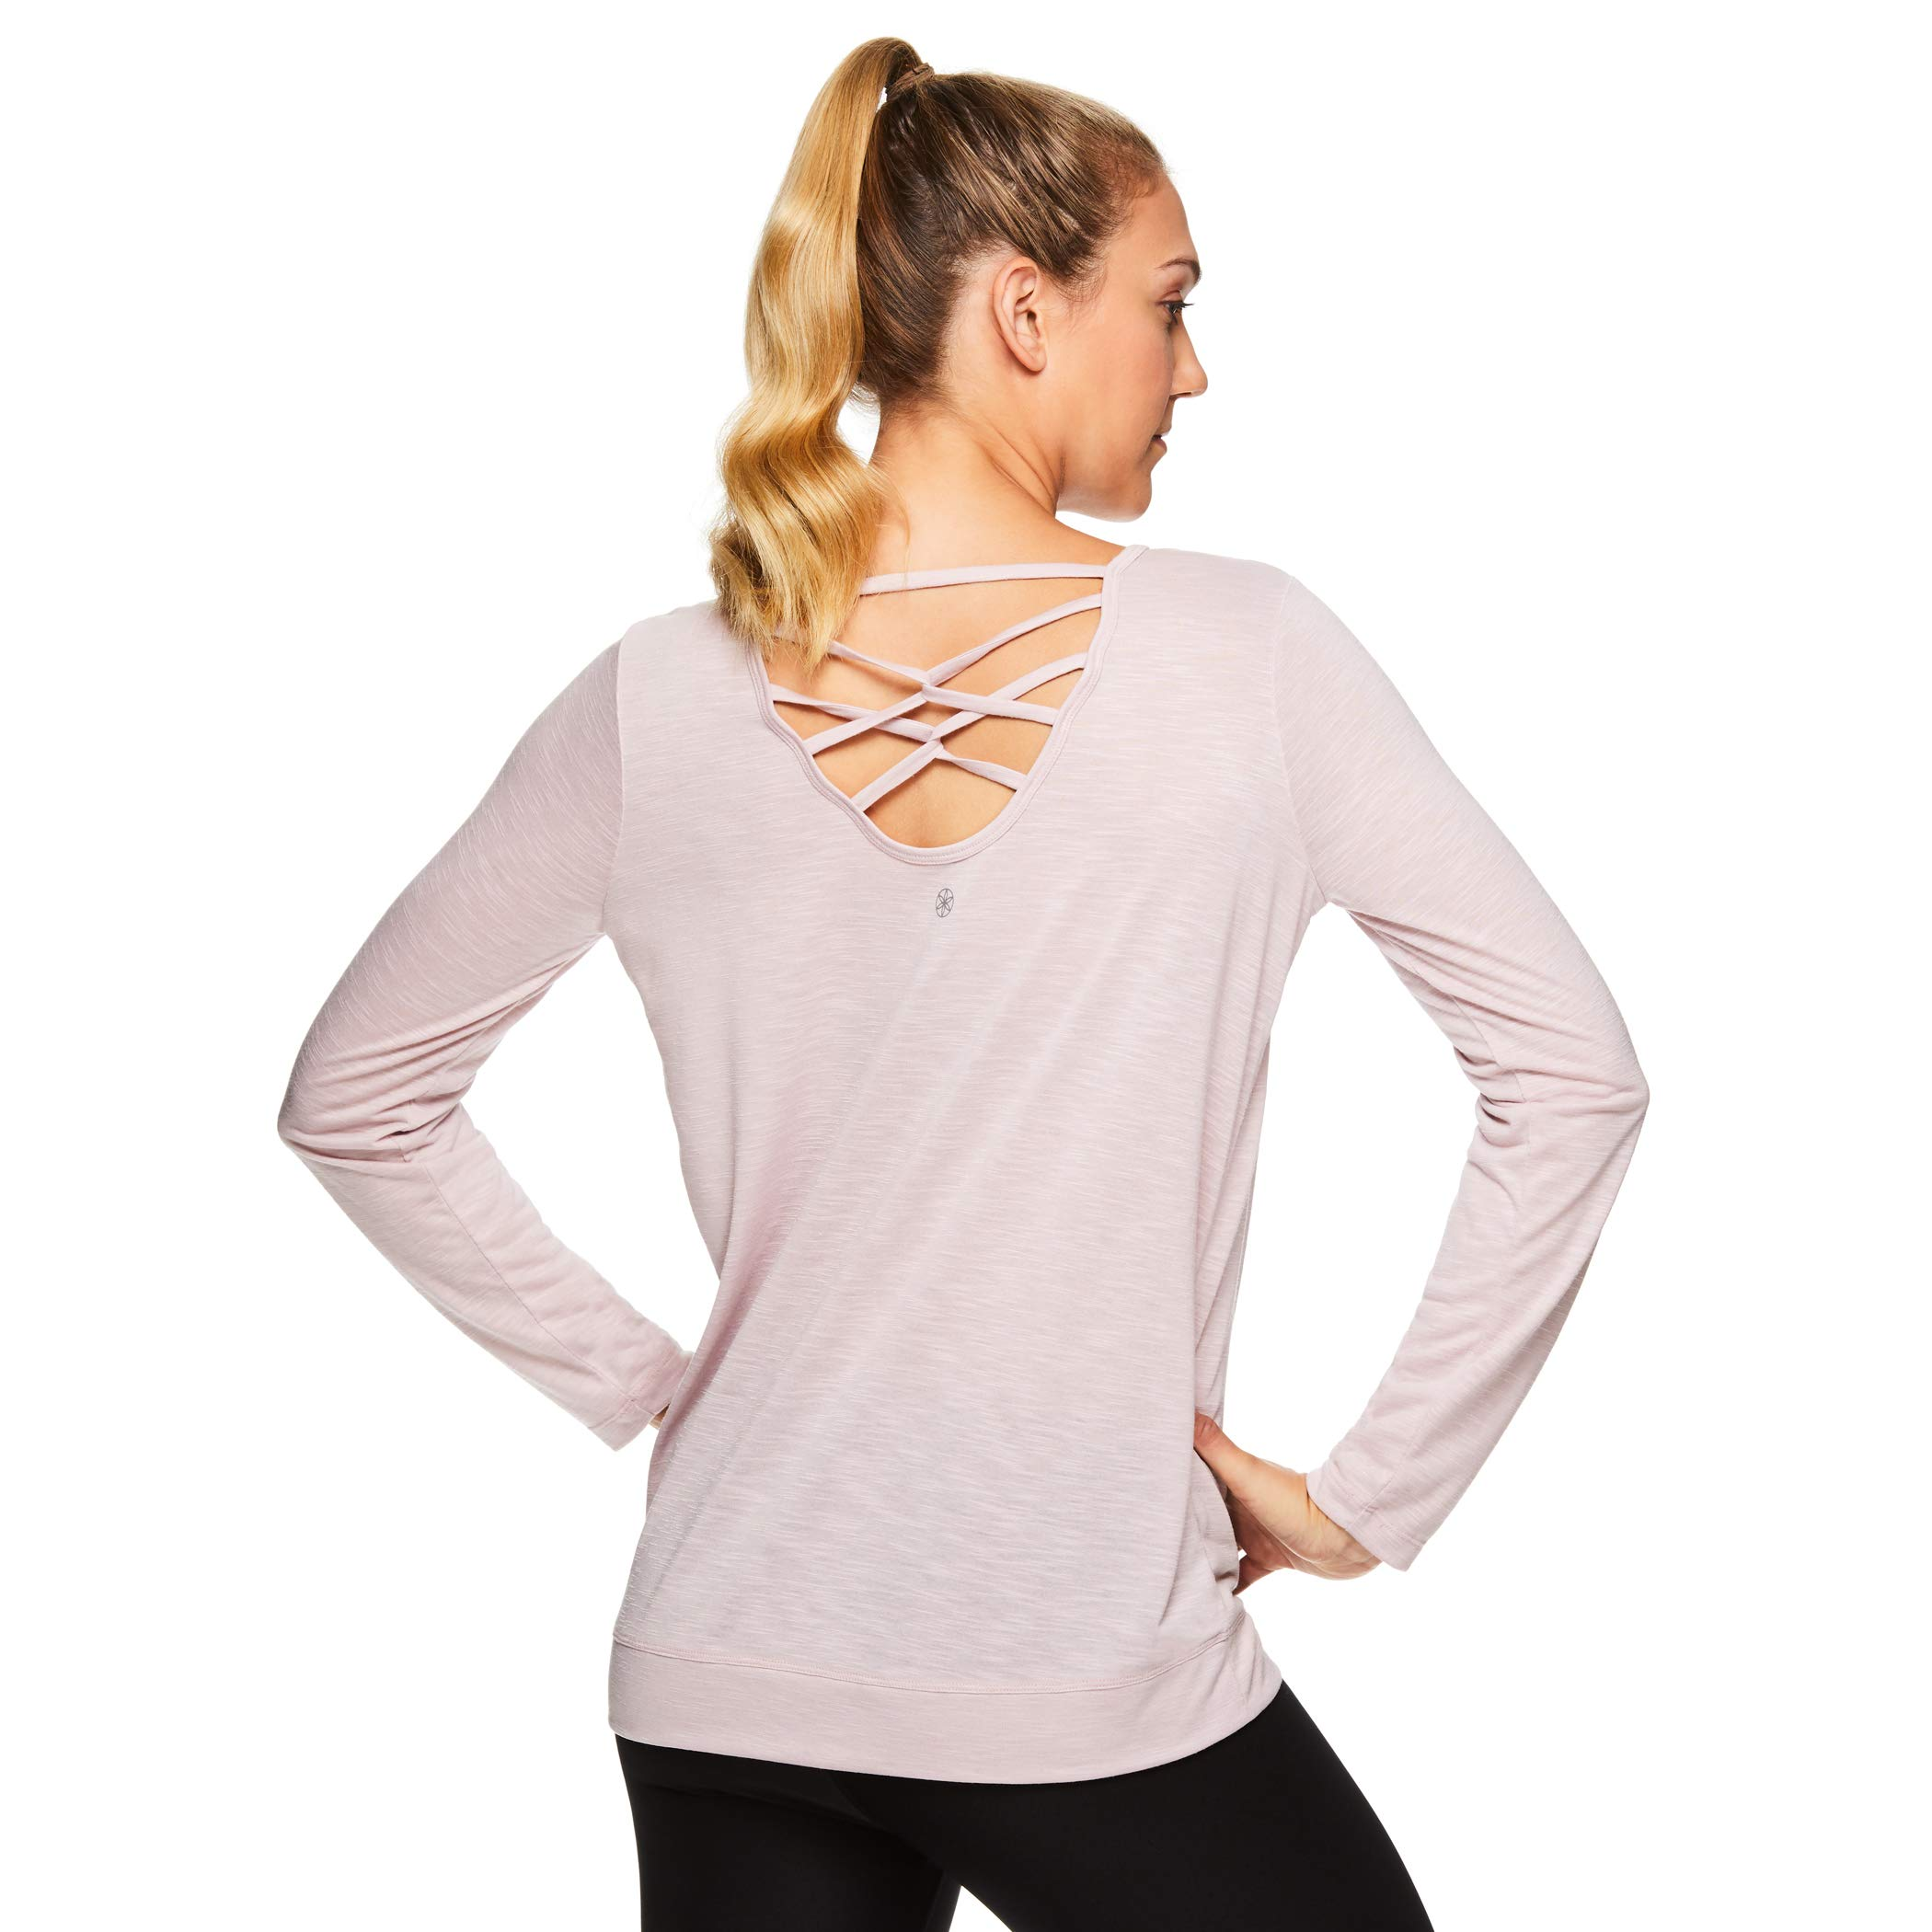 Gaiam Women's Long Sleeve Yoga & Workout T Shirt - Athletic Gym Top with Strappy Open Back Detail - Tessa Violet Ice Pink, Small by Gaiam